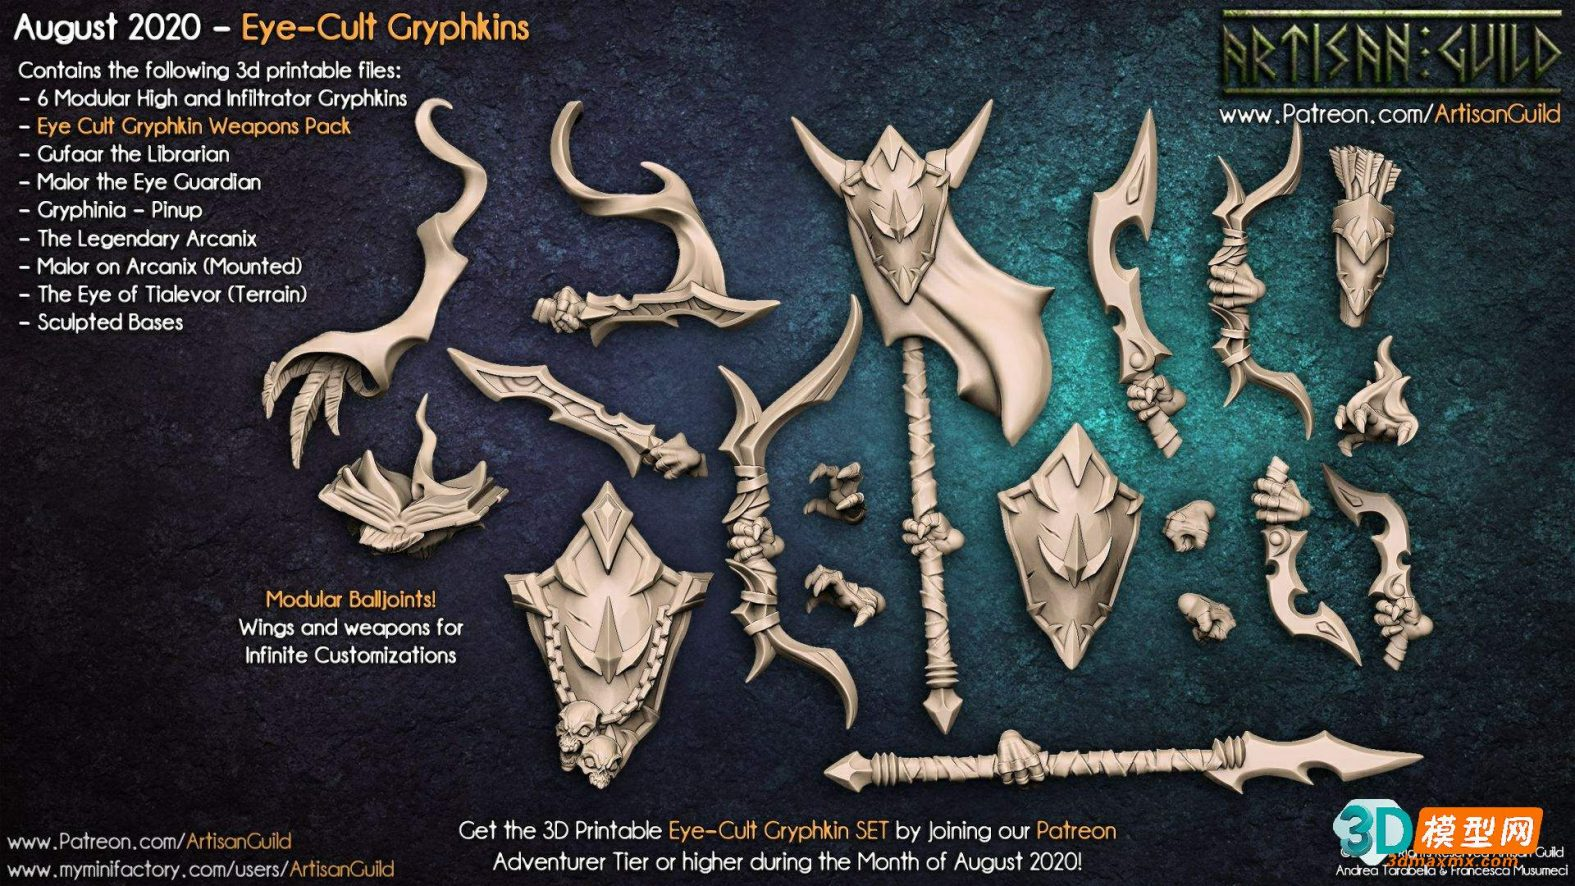 Standalone High Gryphkin Weapons插图